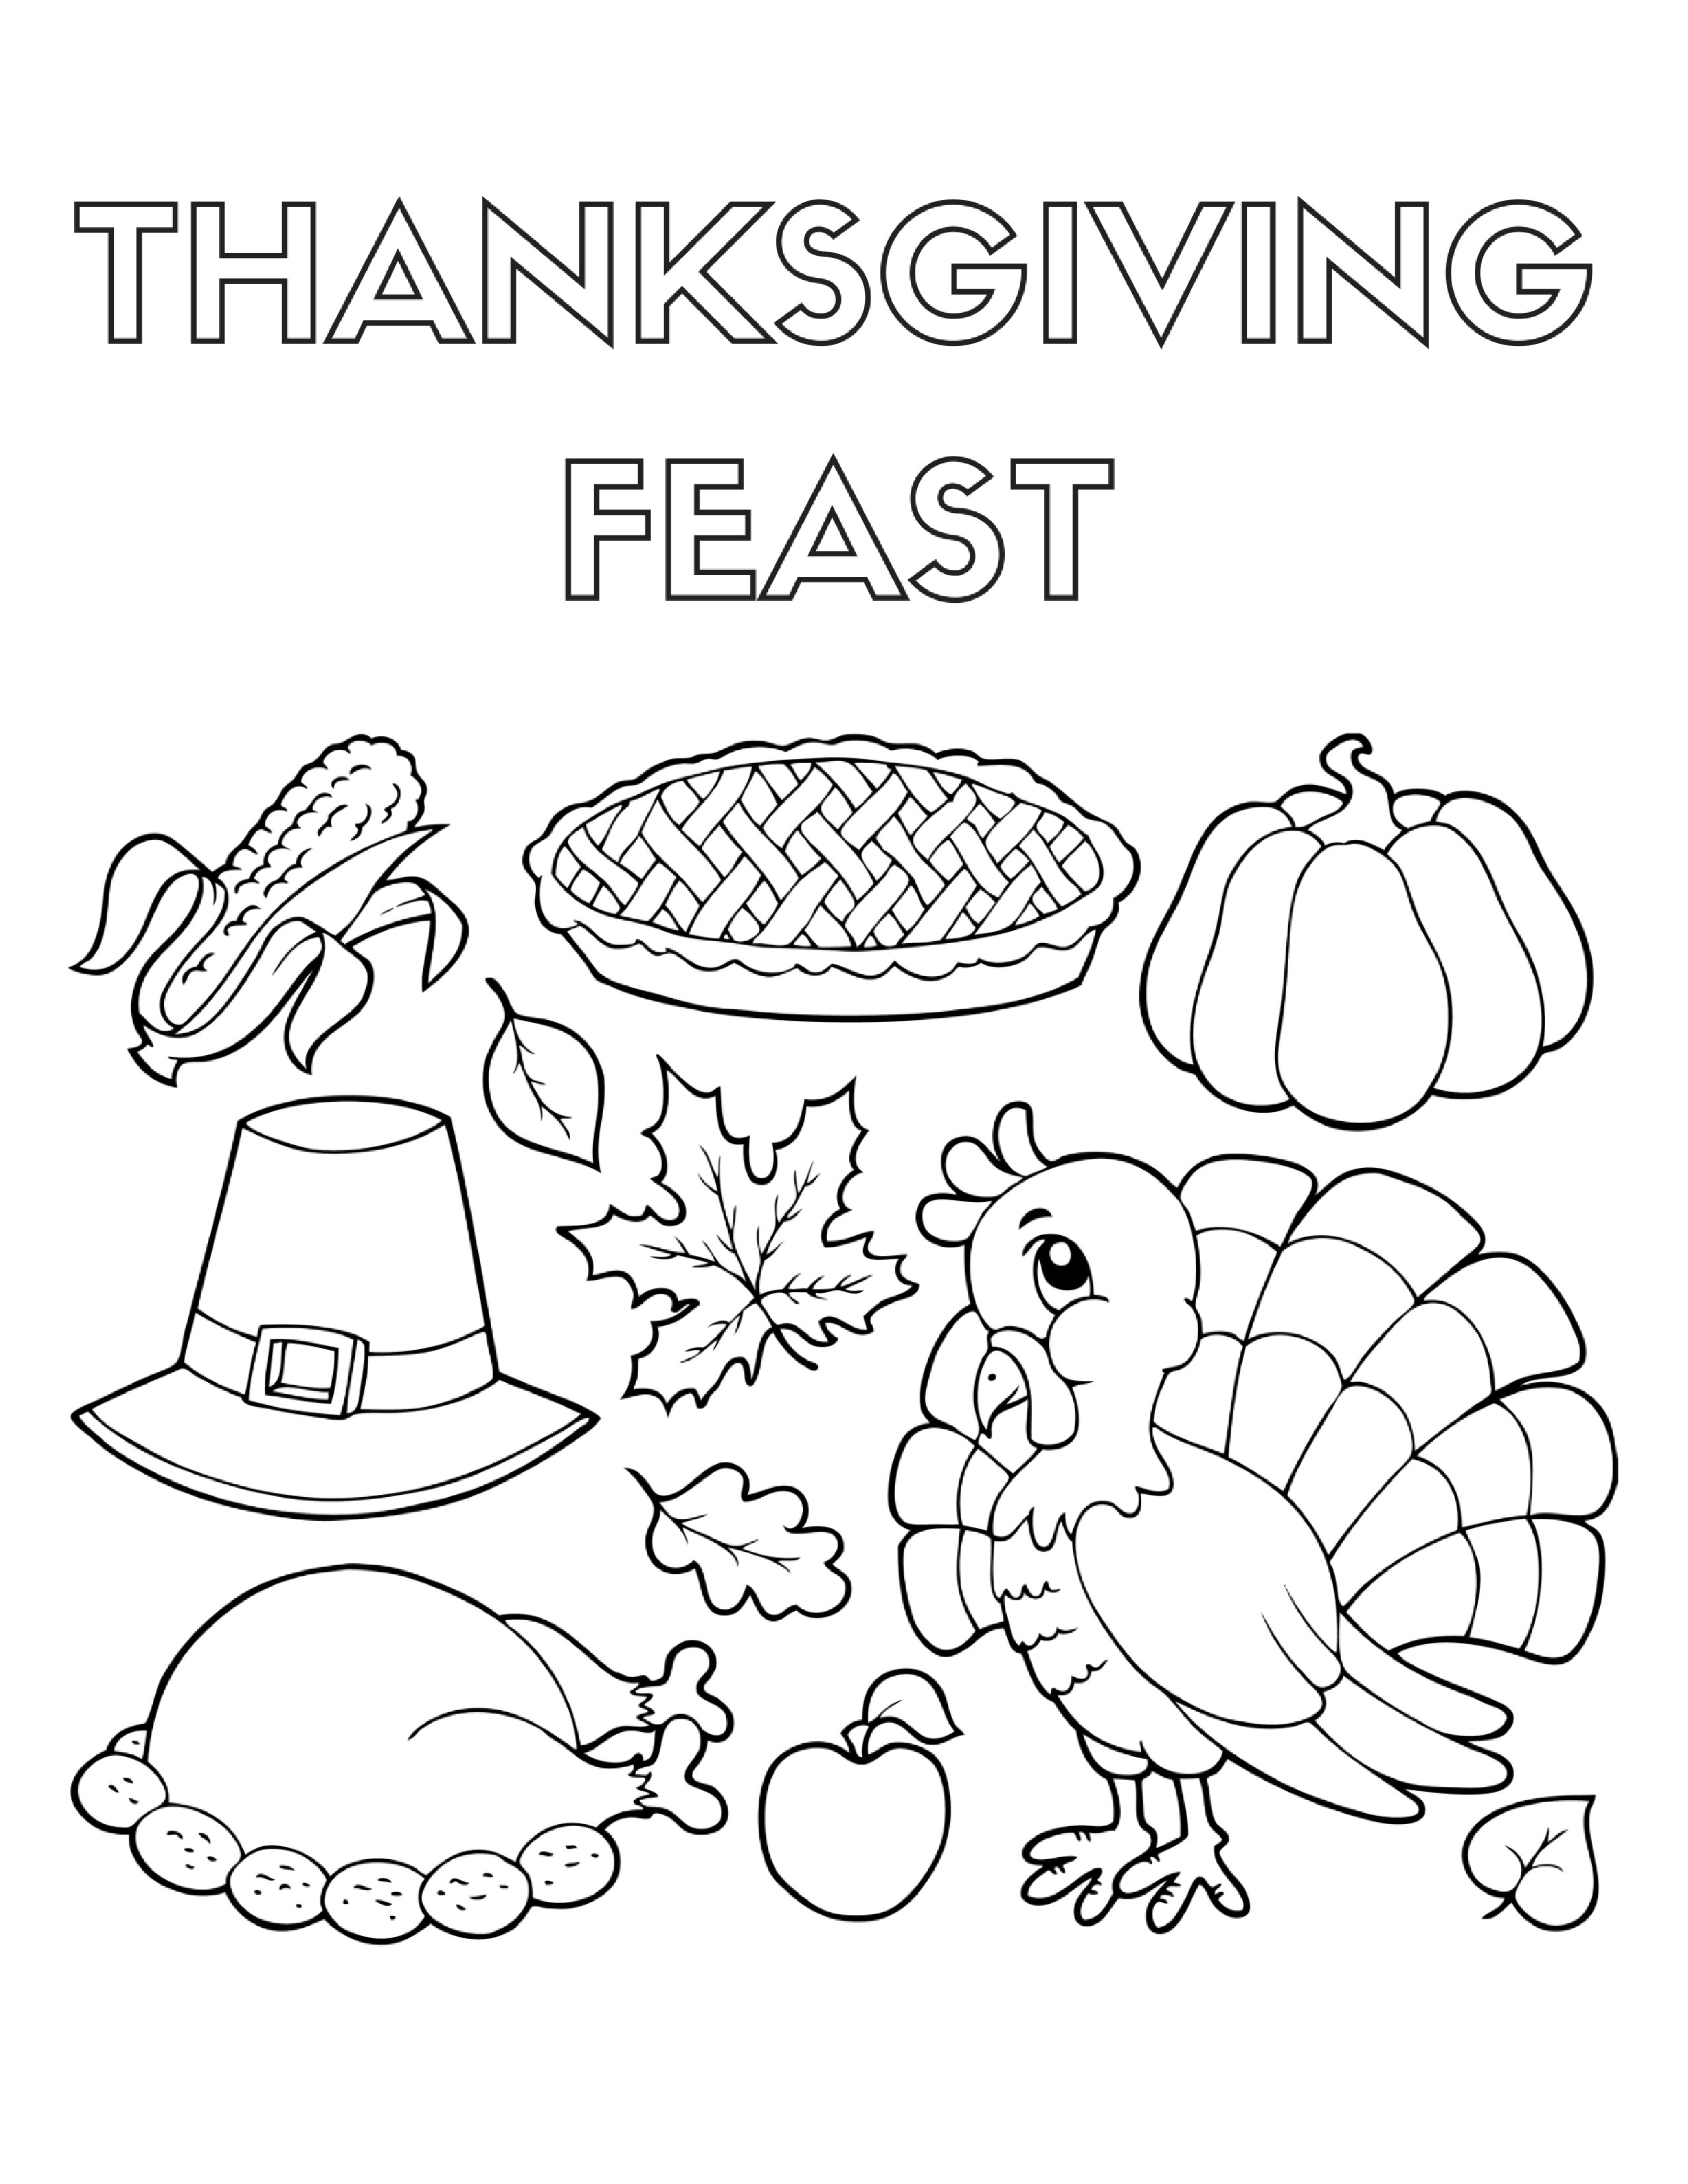 Thanksgiving Dinner Coloring Pages At Getcolorings